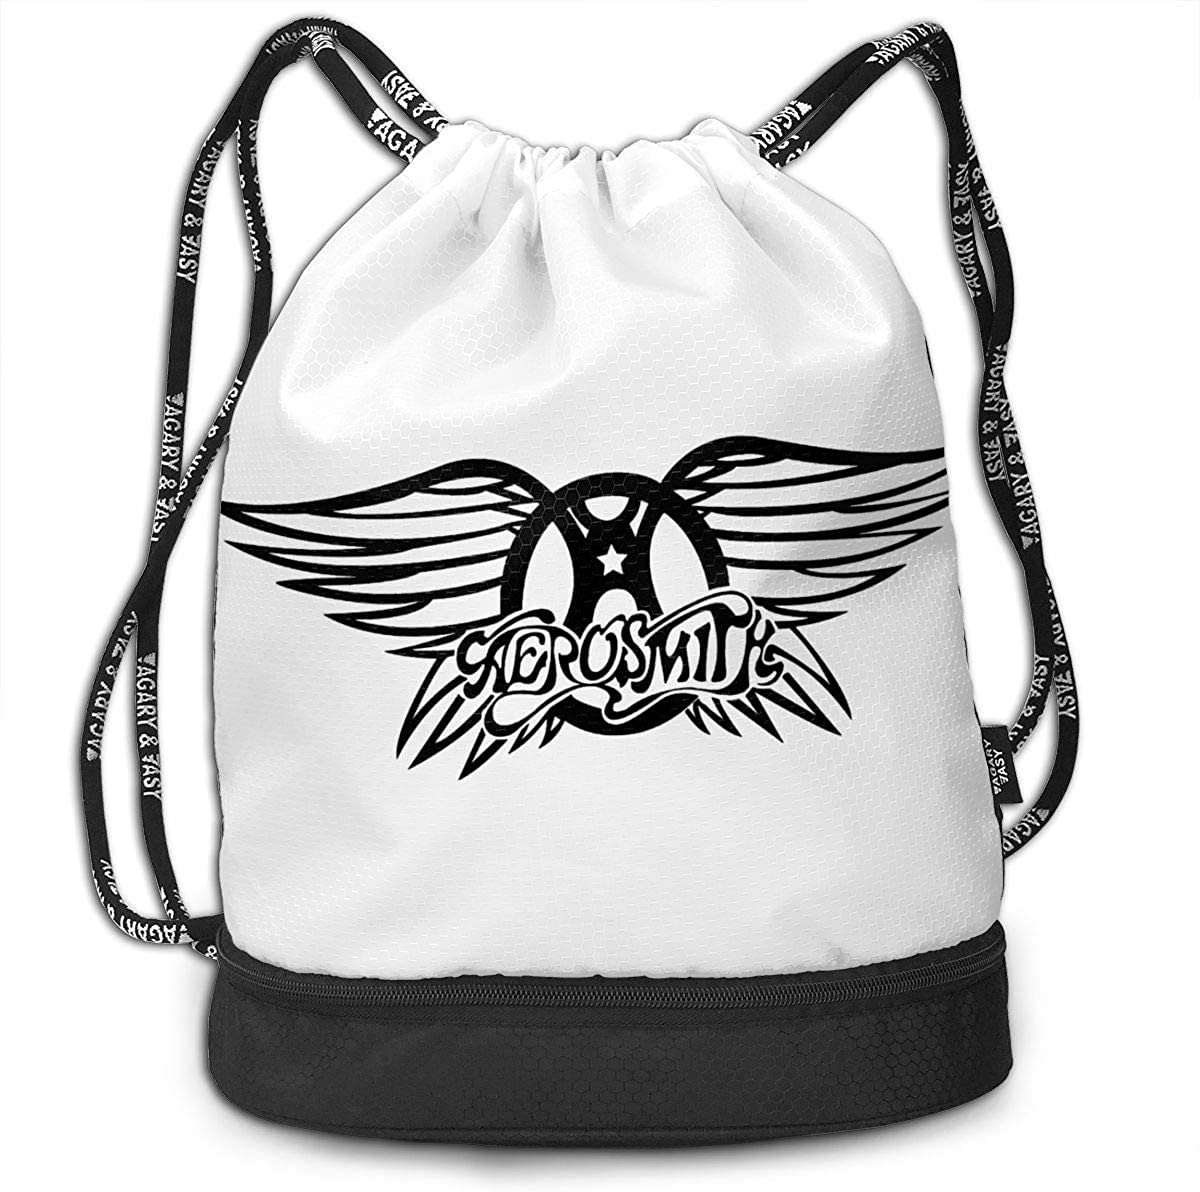 Sport Gym Travel Bag AgoodShop Aerosmith Drawstring Backpack